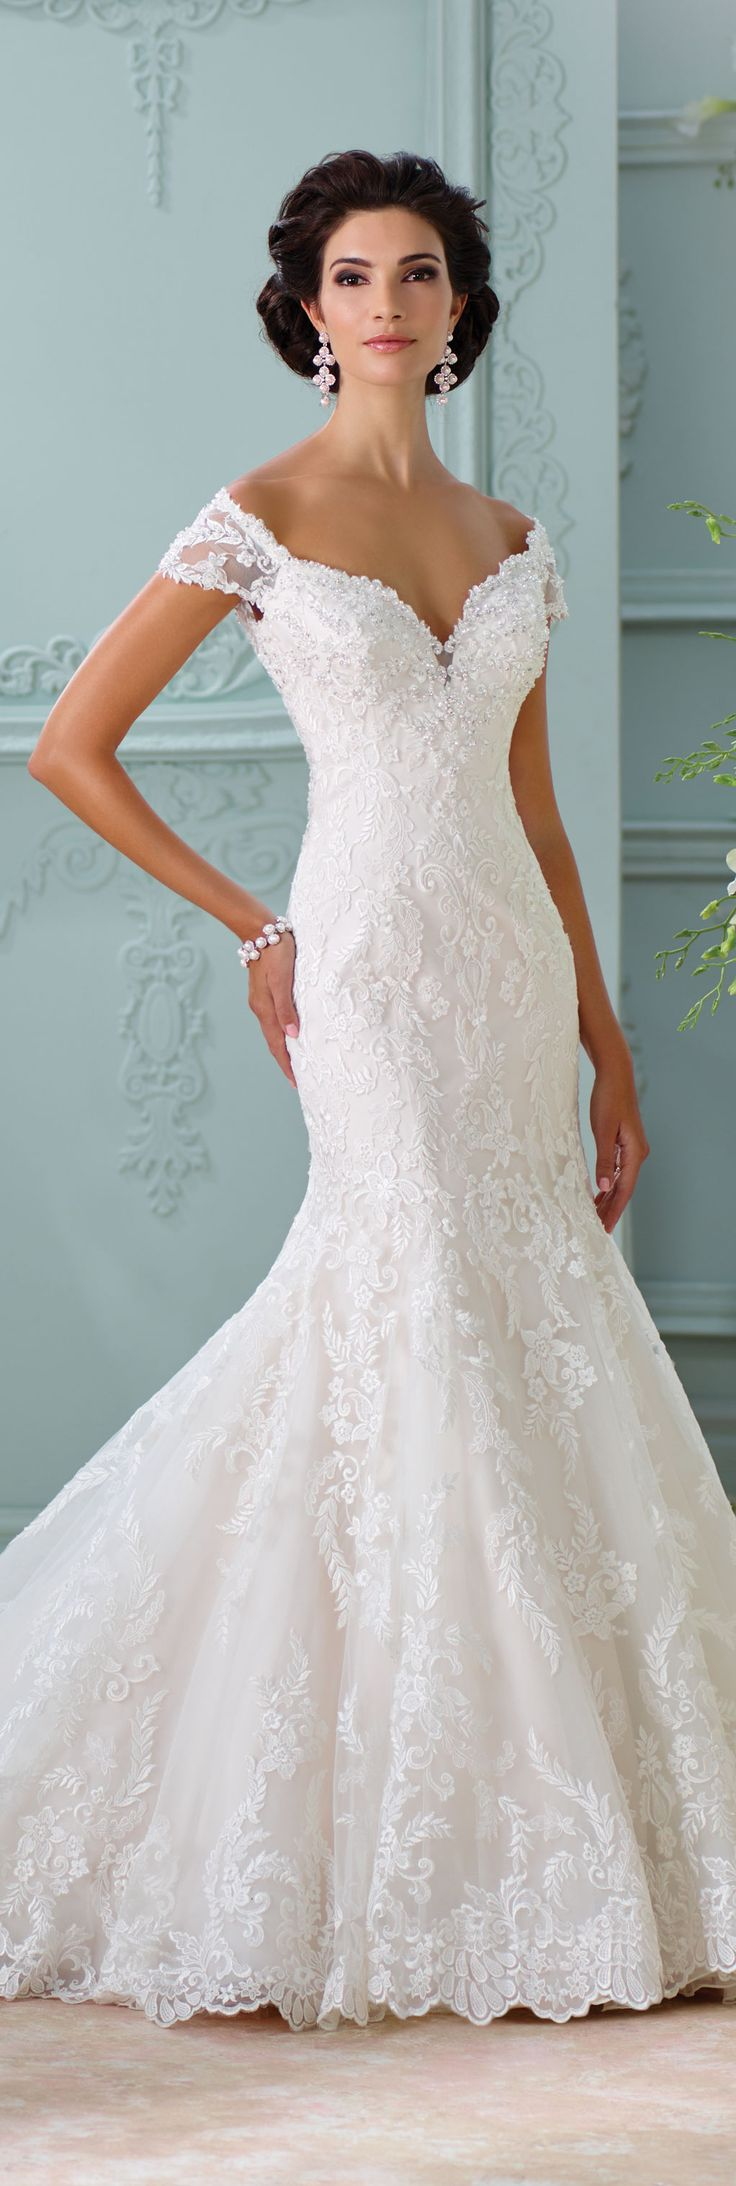 Simple off the shoulder wedding dresses  The David Tutera for Mon Cheri Spring  Wedding Gown Collection